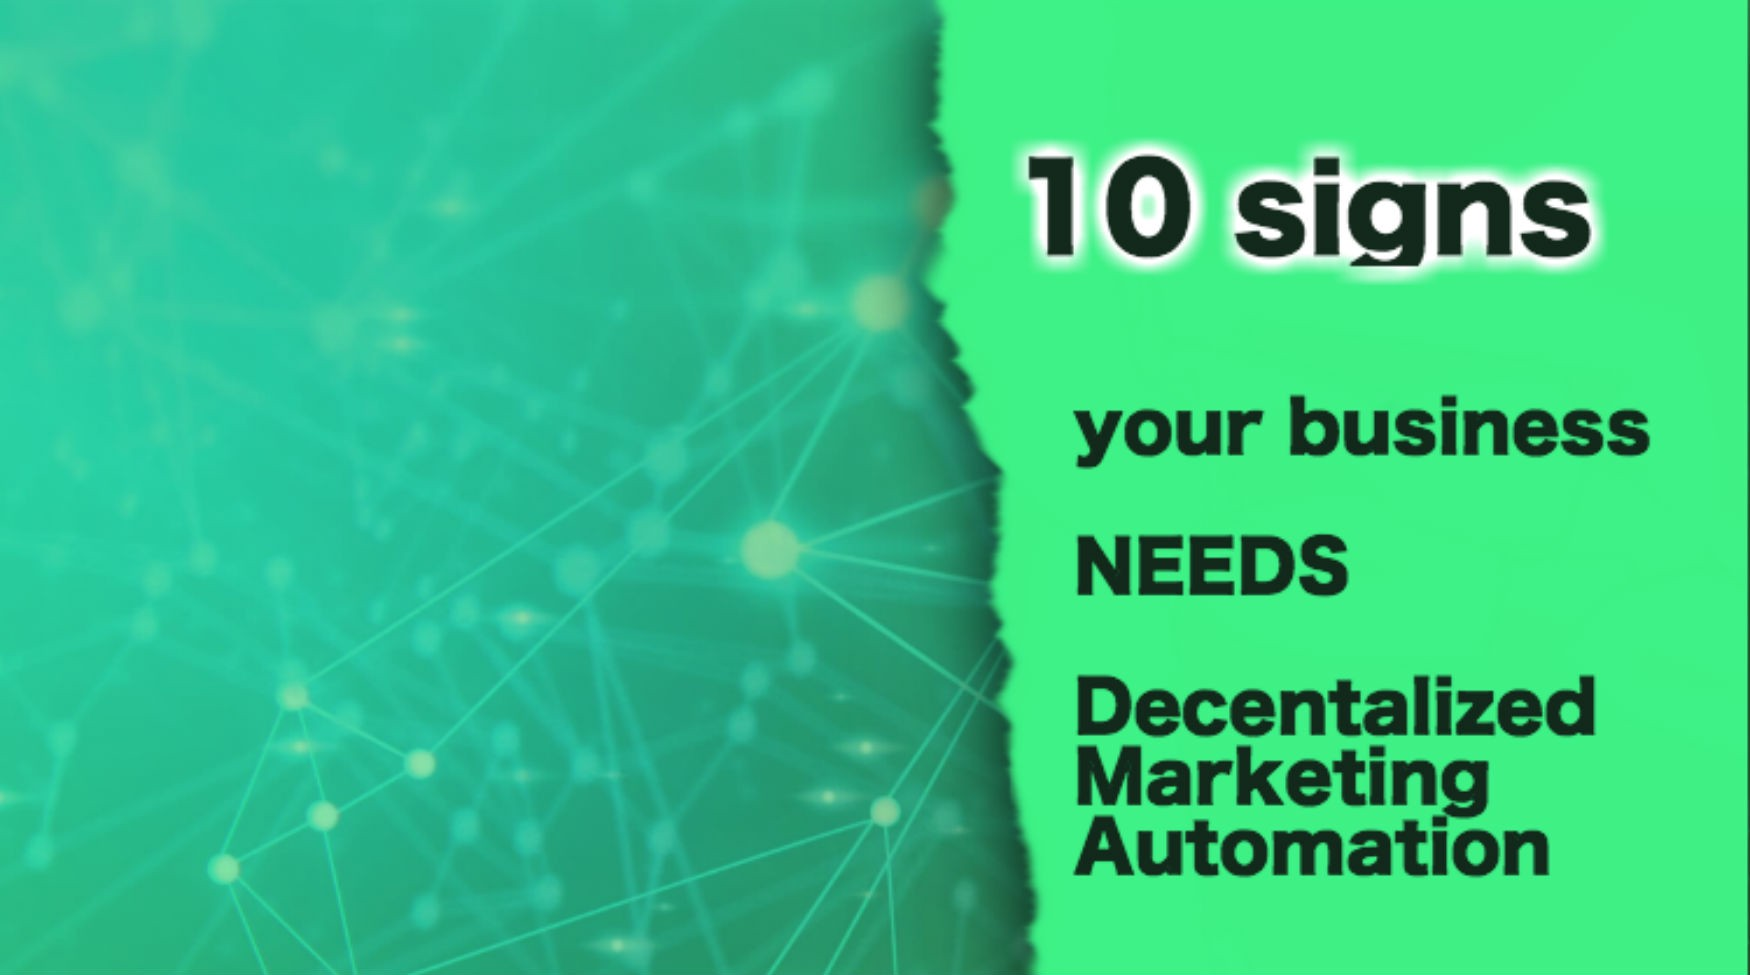 hackernoon.com - Triggmine - 10 Signs Your Business Needs Decentralized Marketing Automation